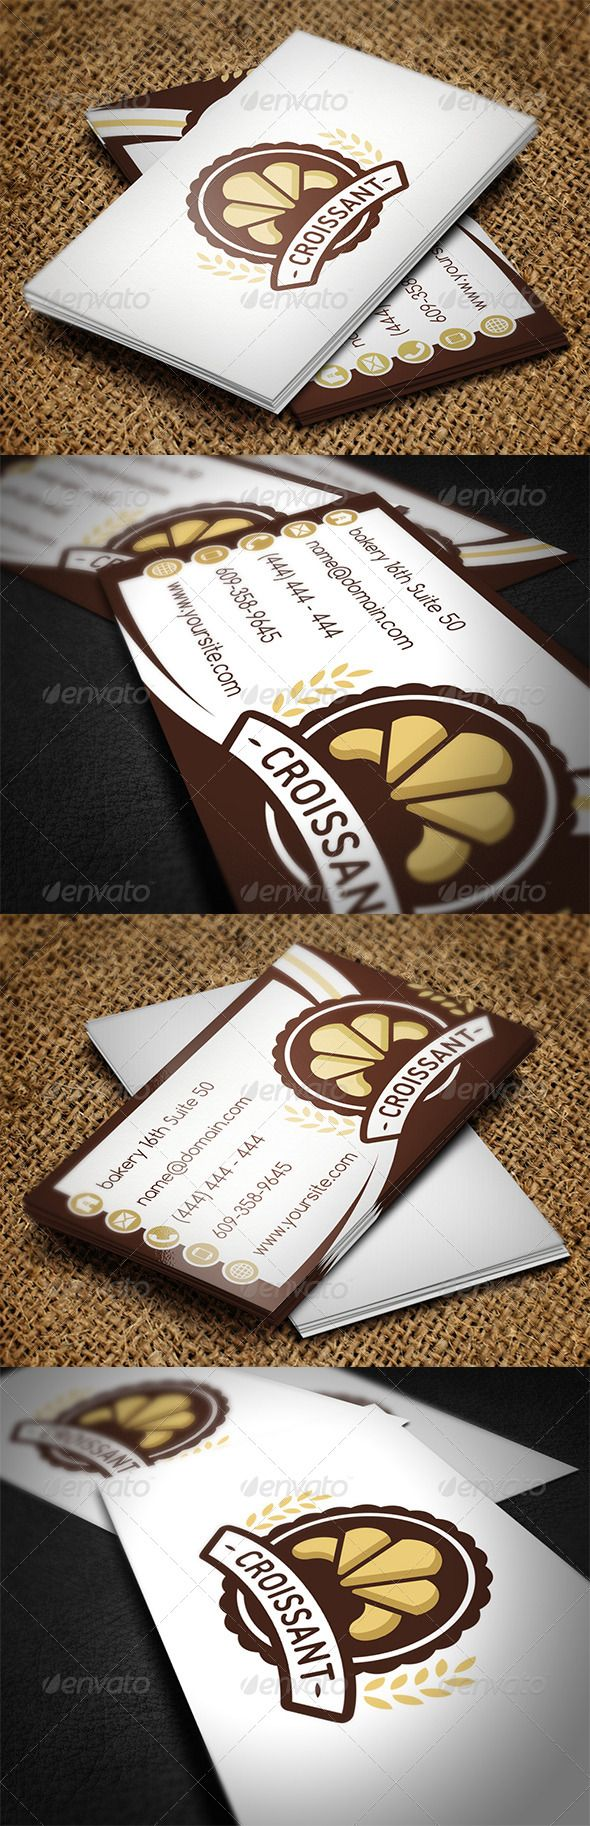 2859 best Business Card Template & Design images on Pinterest ...